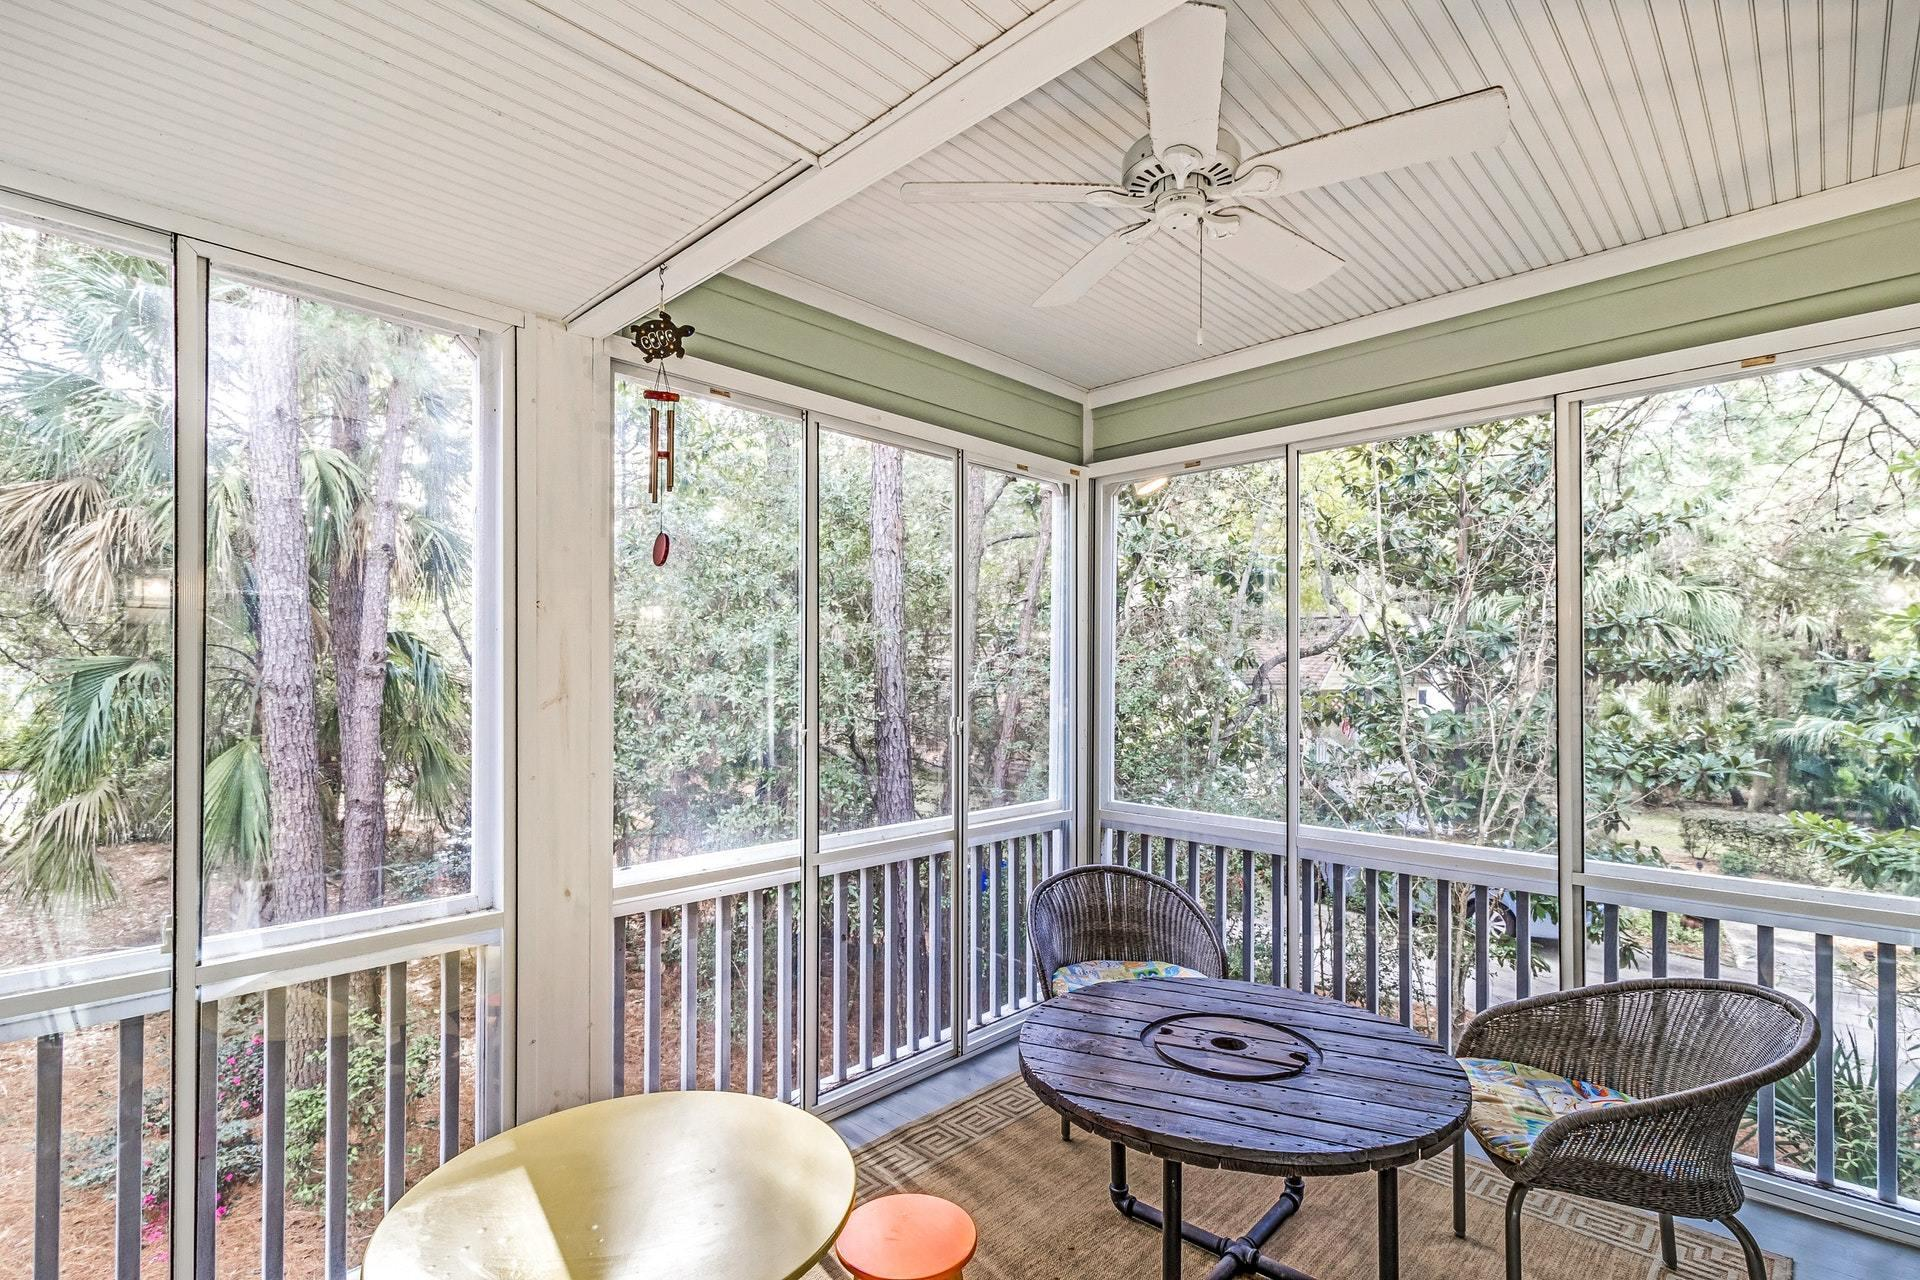 Wild Dunes Homes For Sale - 28 Edgewater Alley, Isle of Palms, SC - 11